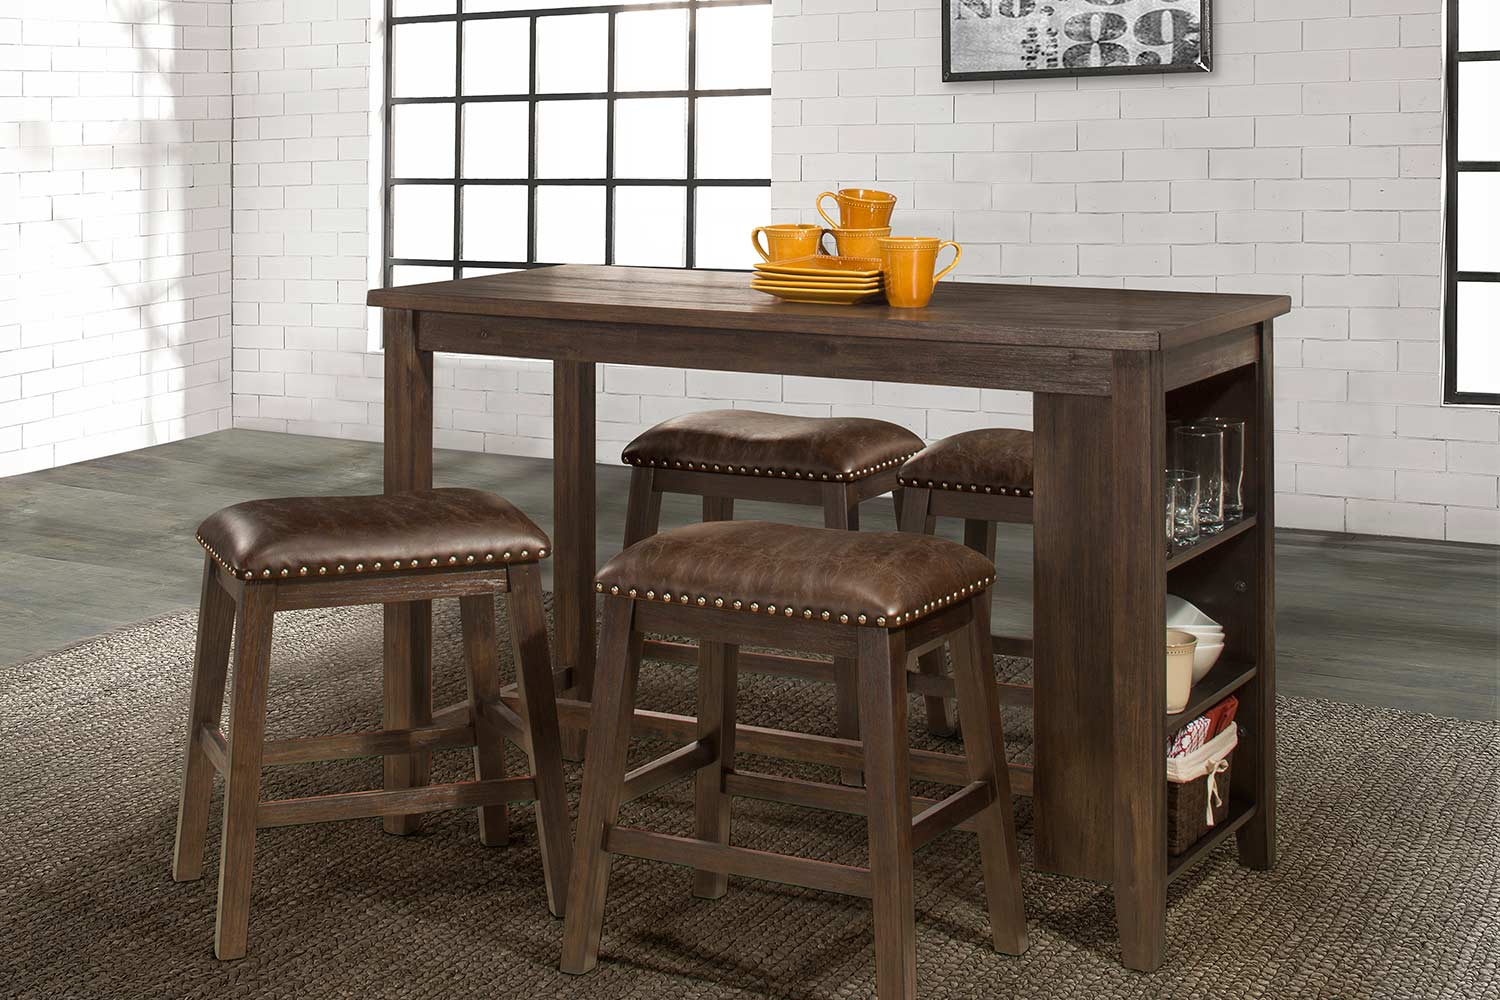 Hillsdale Spencer 5 Piece Counter Height Dining Set with Backless Counter Height Stools - Dark Espresso